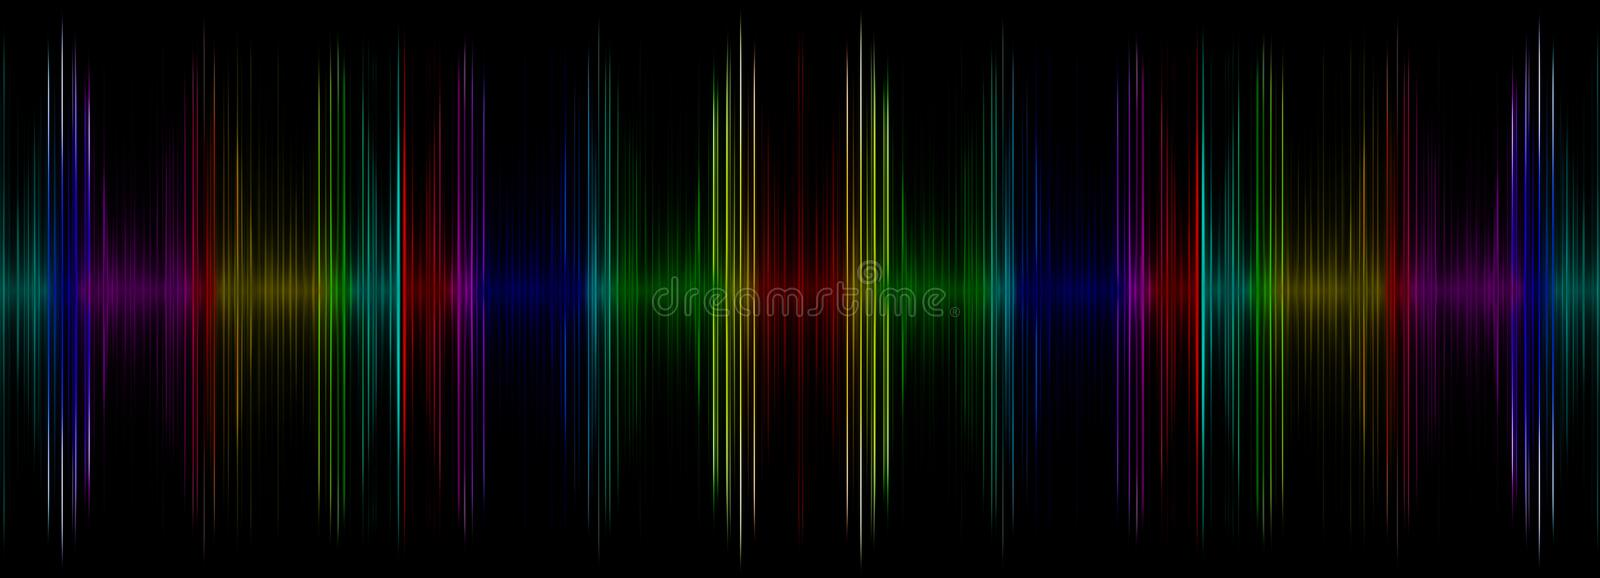 Abstract multicolored sound equalizer display. royalty free illustration